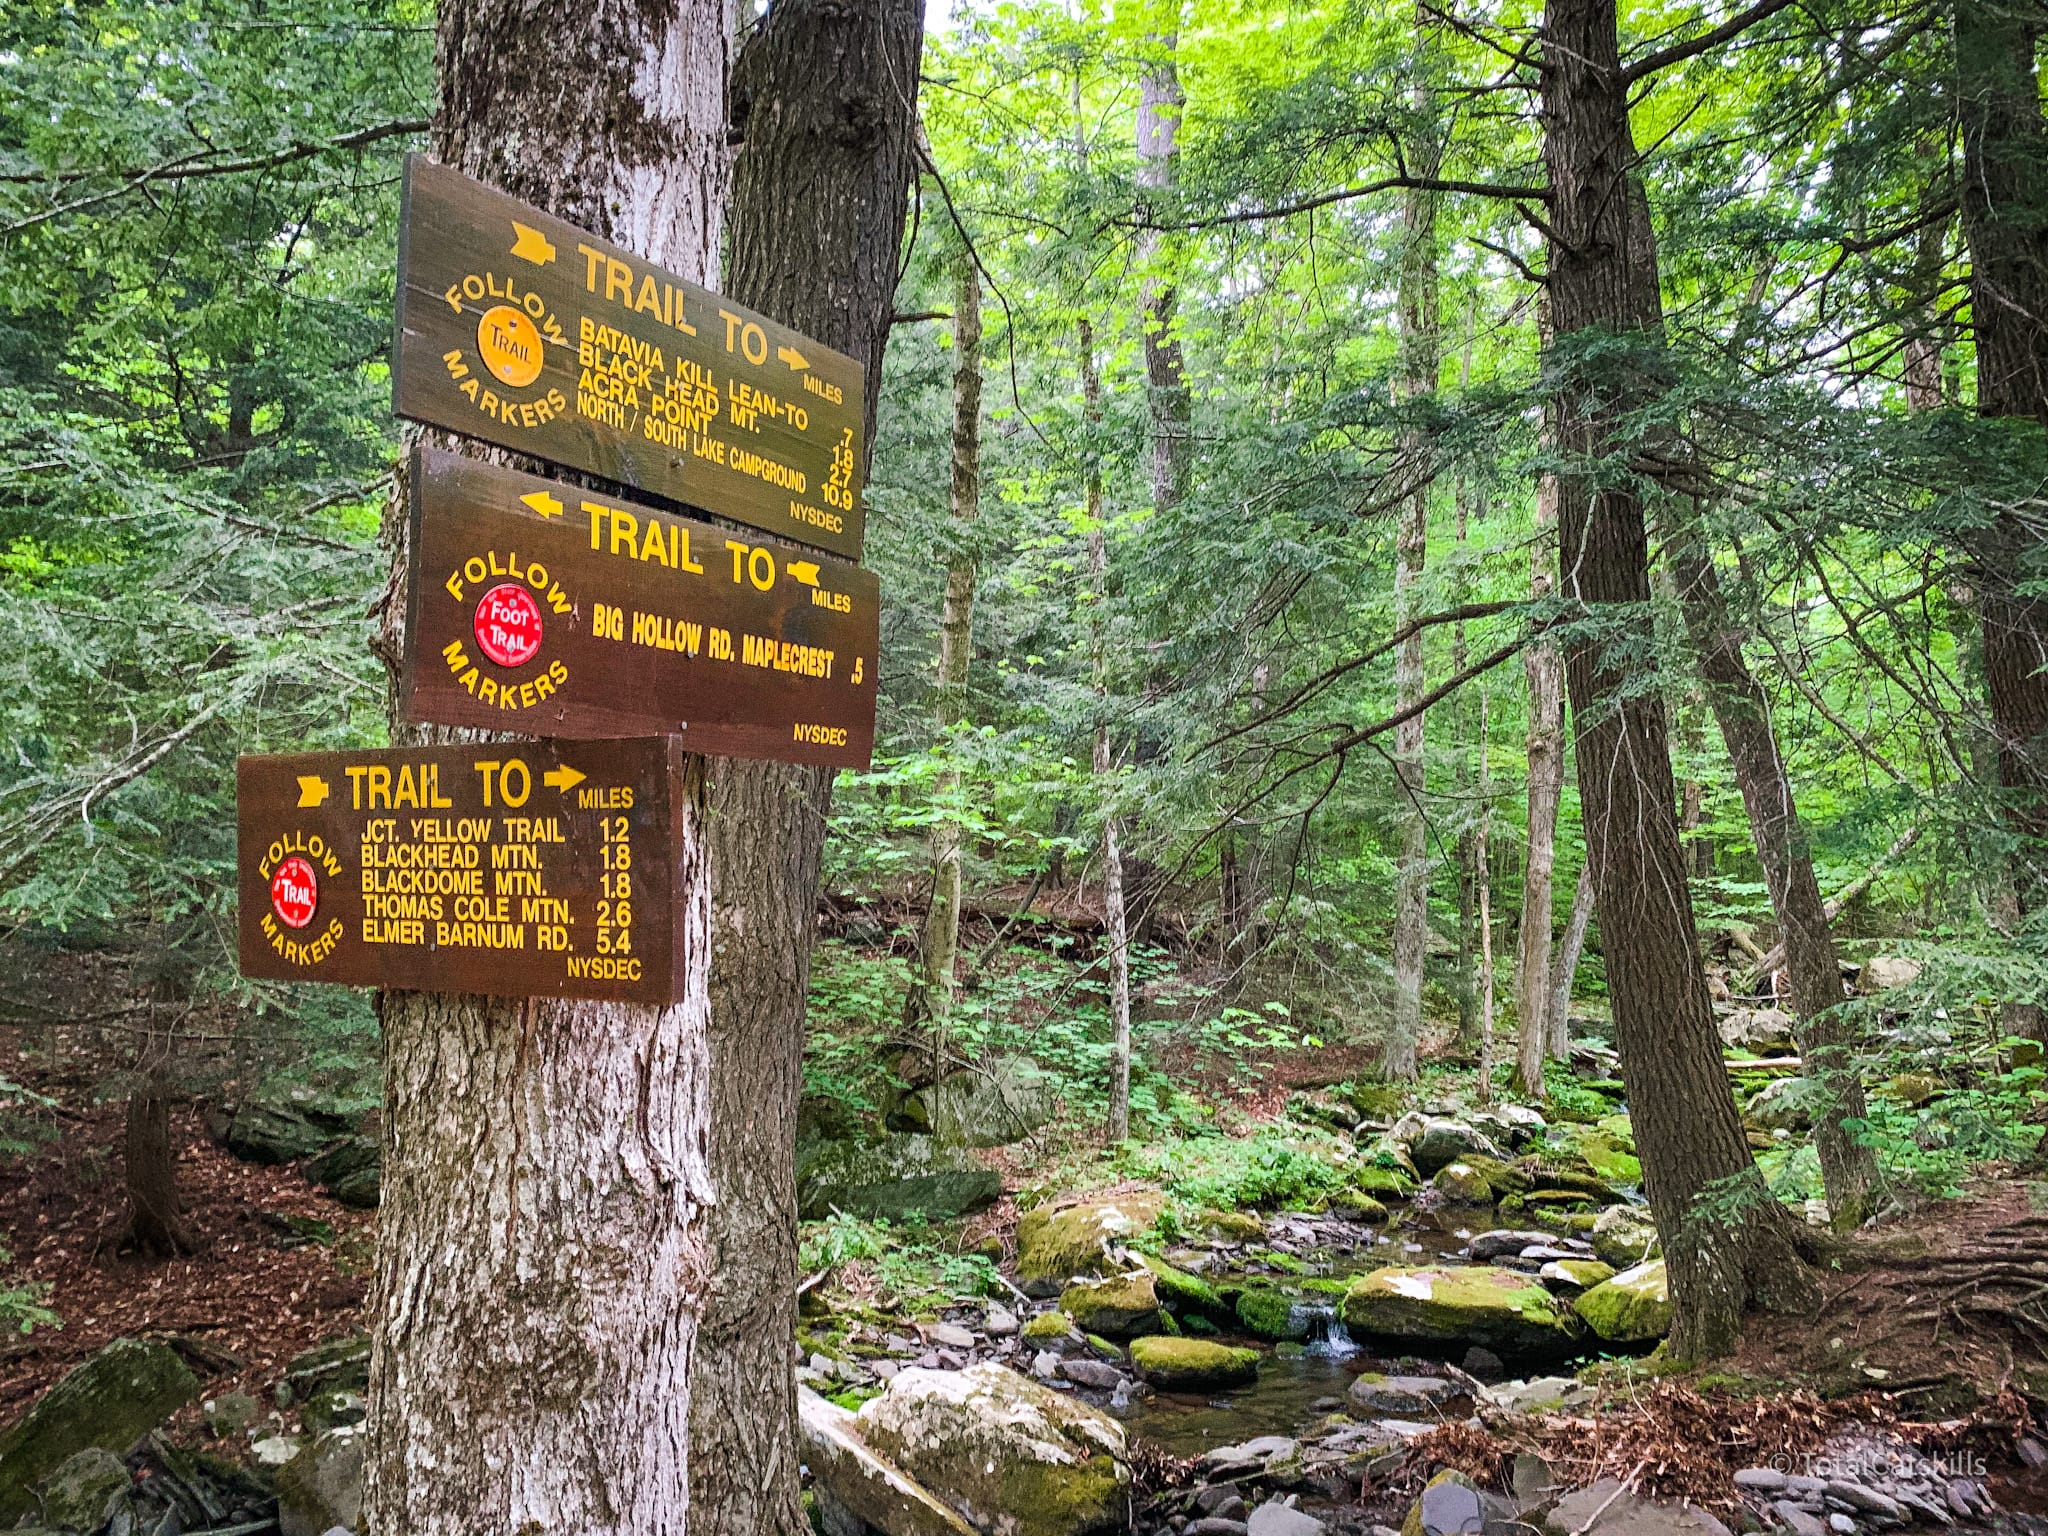 trail signs on tree